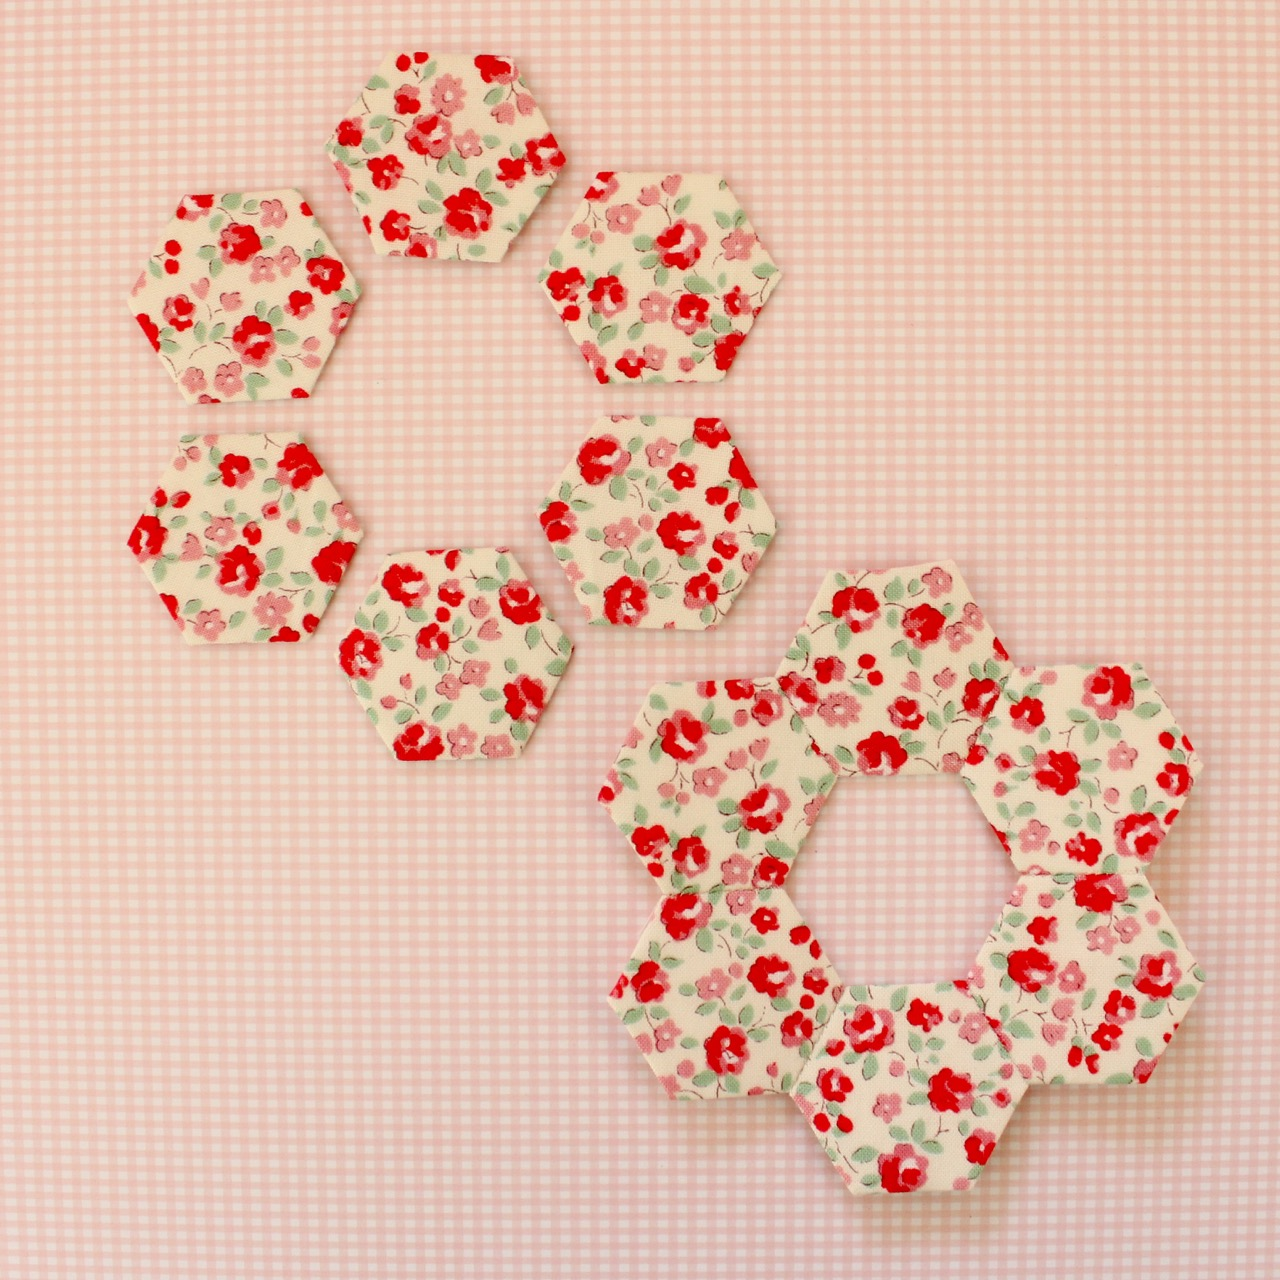 Make Twelve Hexagons How To Find The